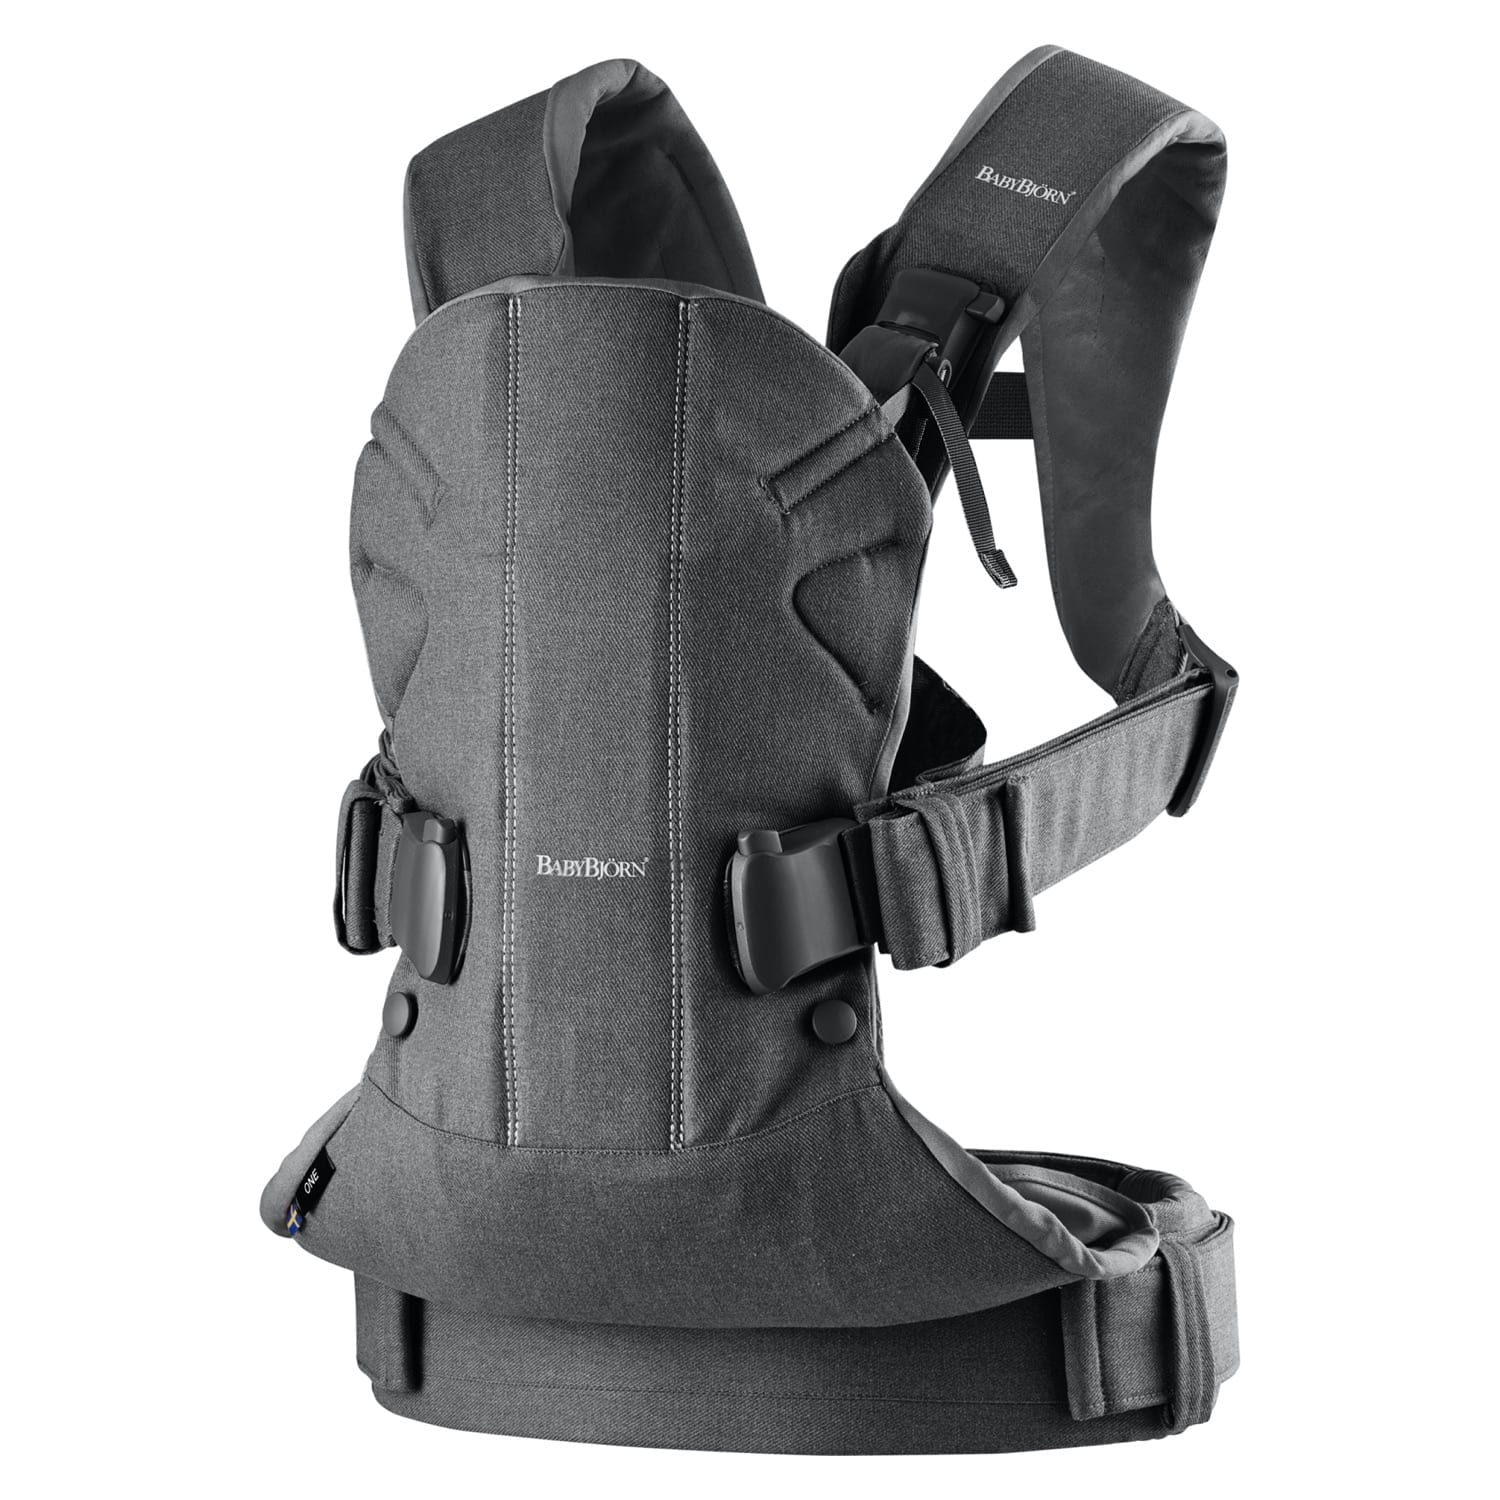 BabyBjorn Carrier One product image